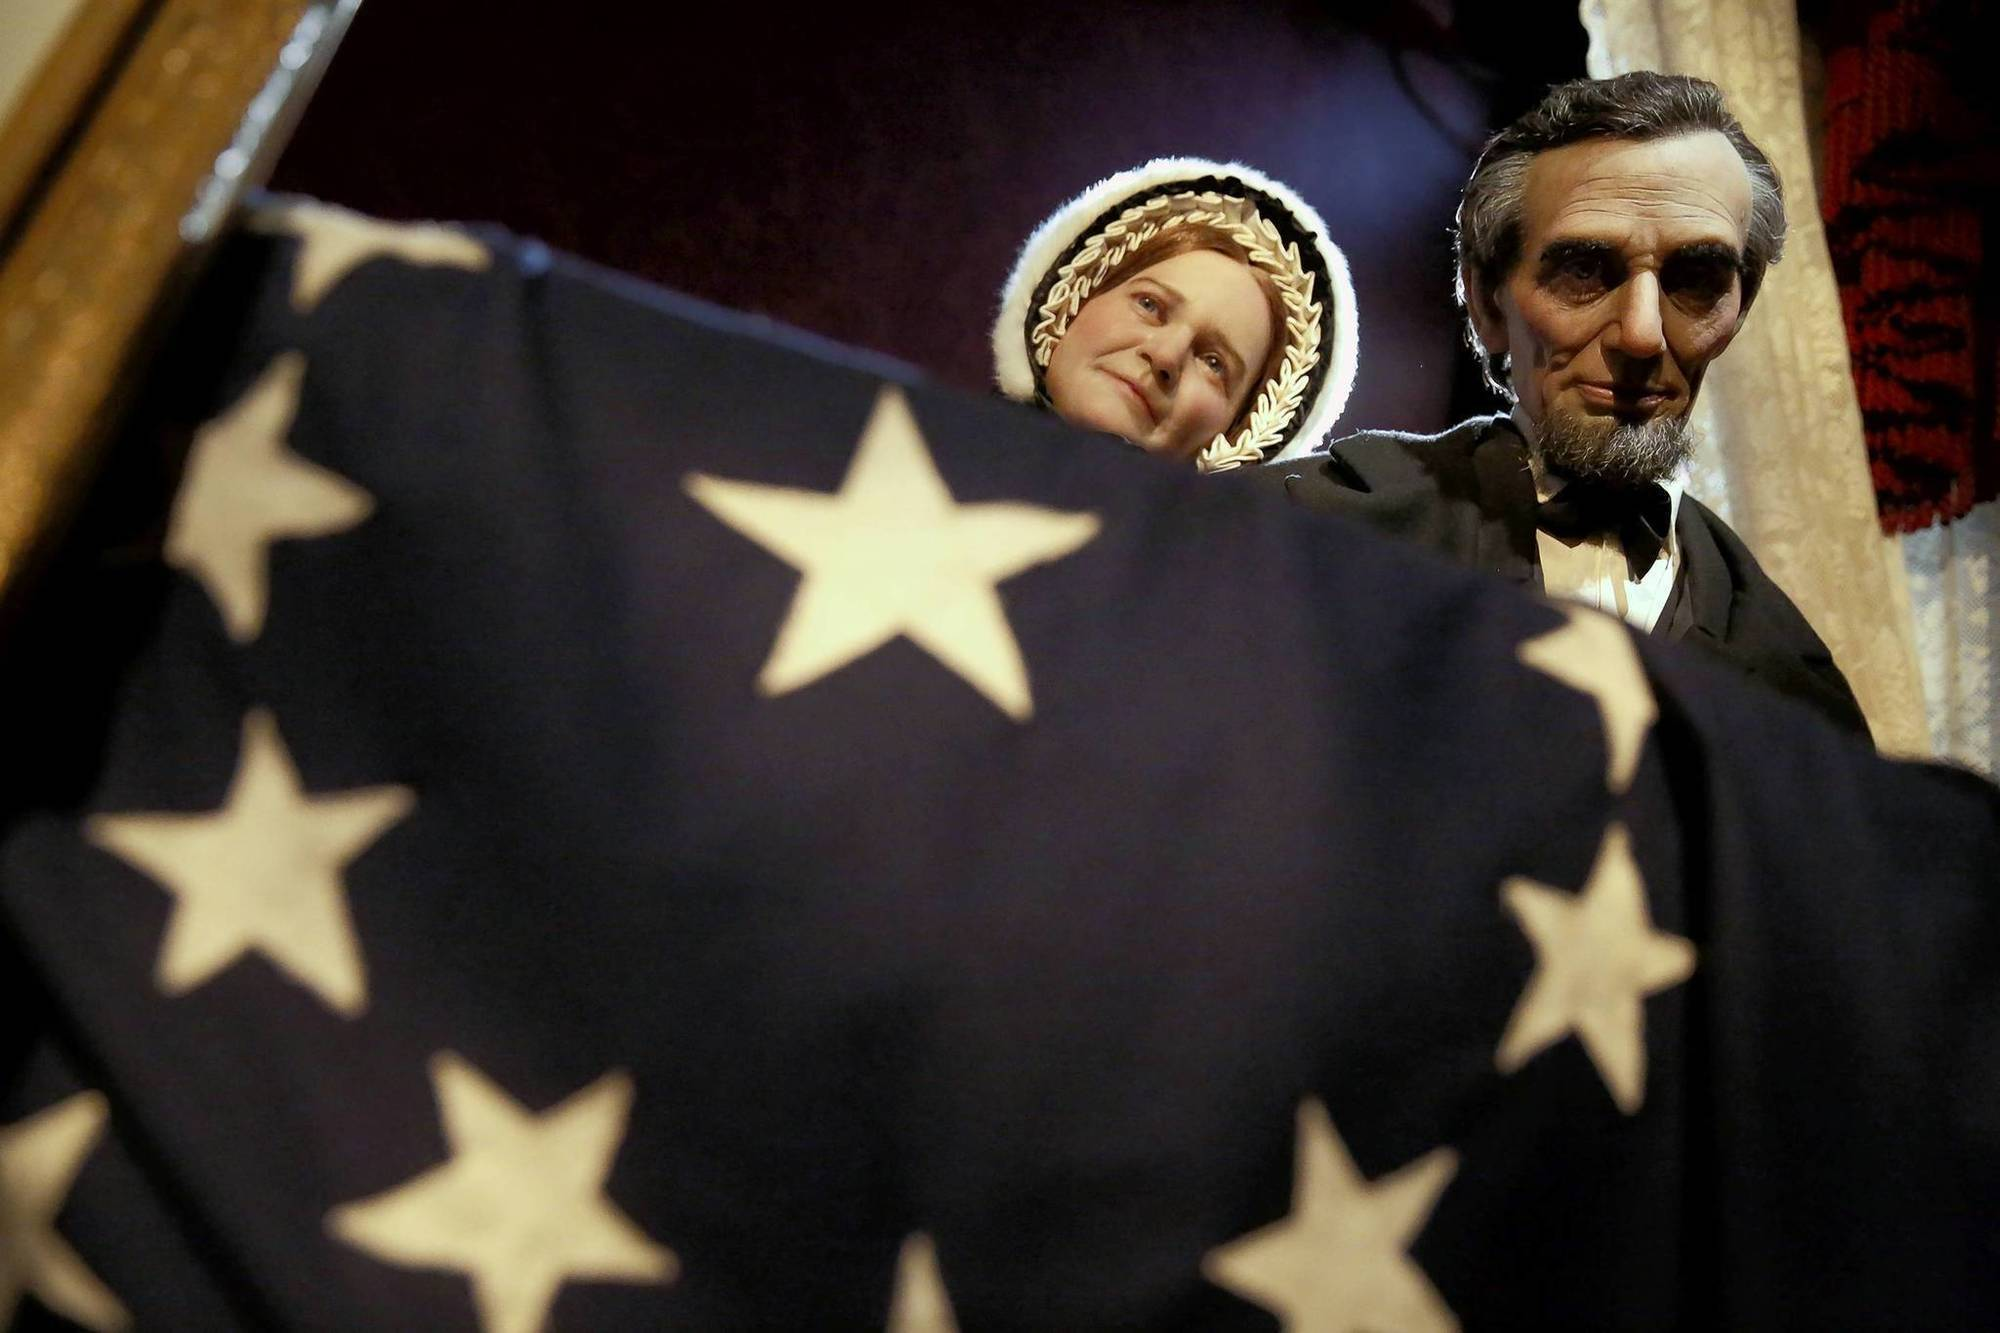 Illinois Needs To Keep Abraham Lincoln S Legacy From Being